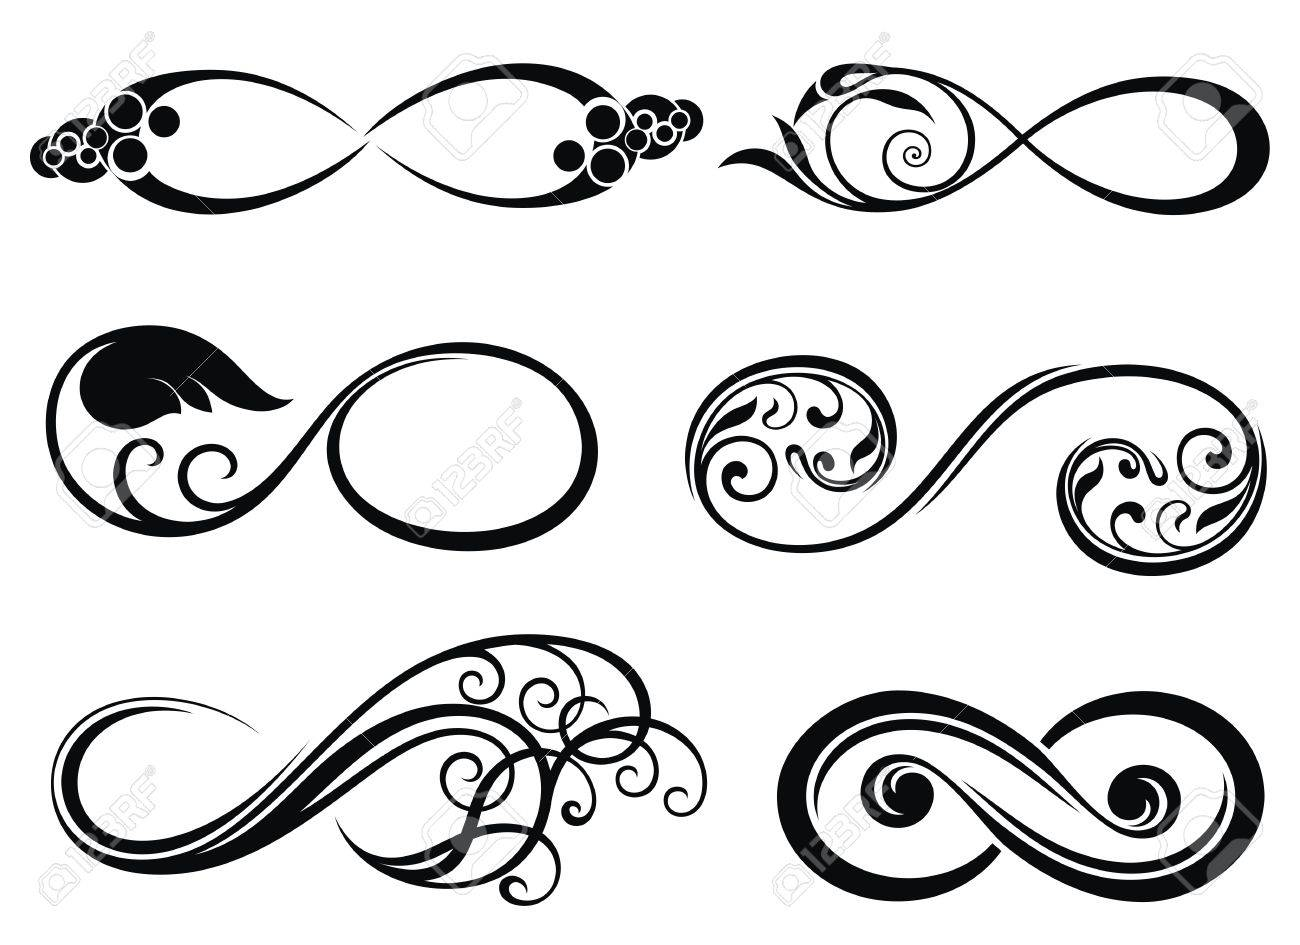 Infinity Forever Symbol Royalty Free Cliparts Vectors And Stock